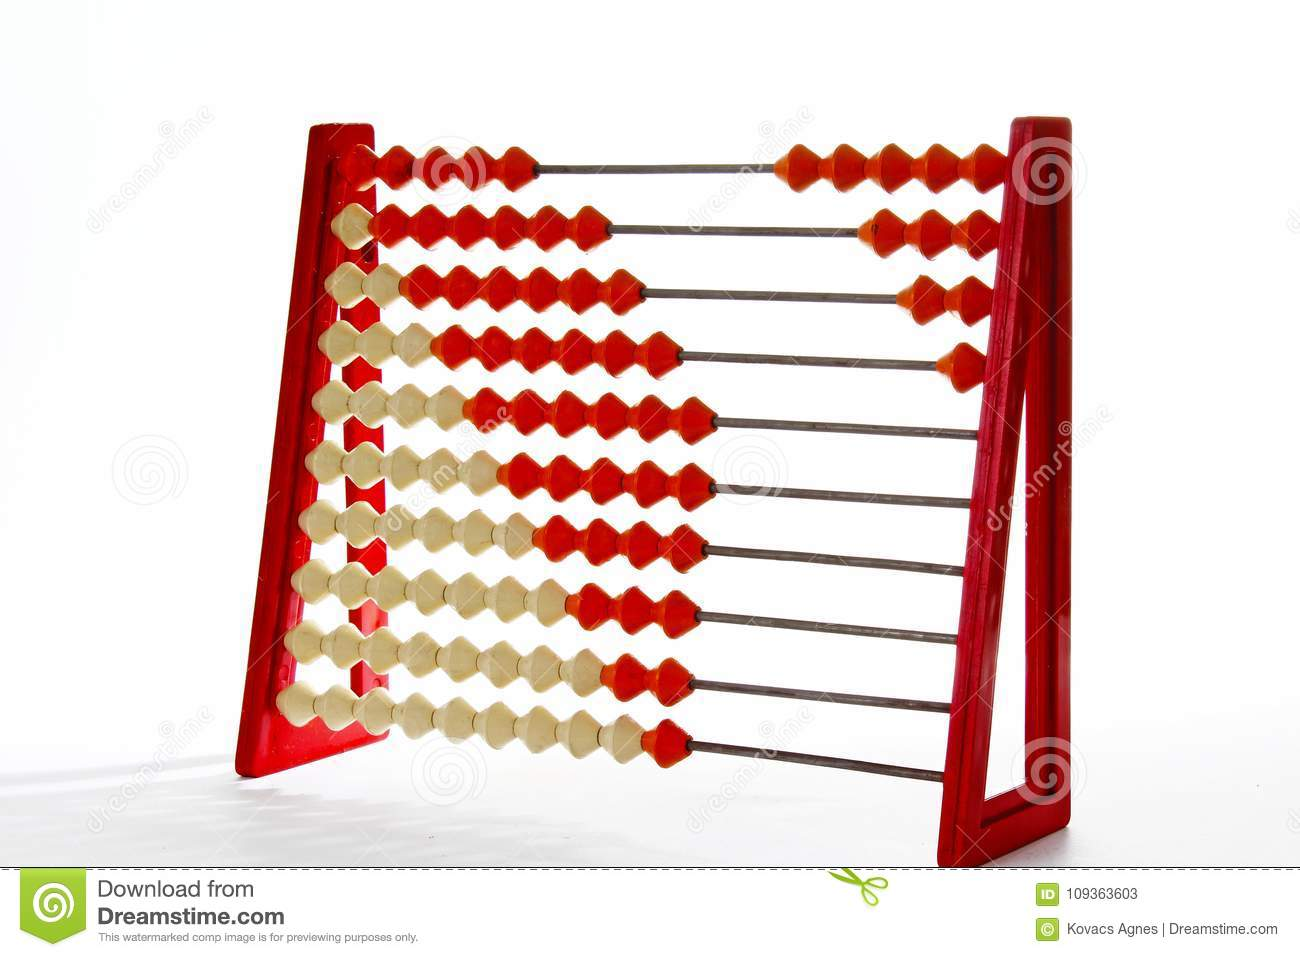 The Soroban Abacus Was One Of The Calculation Tools Before The.